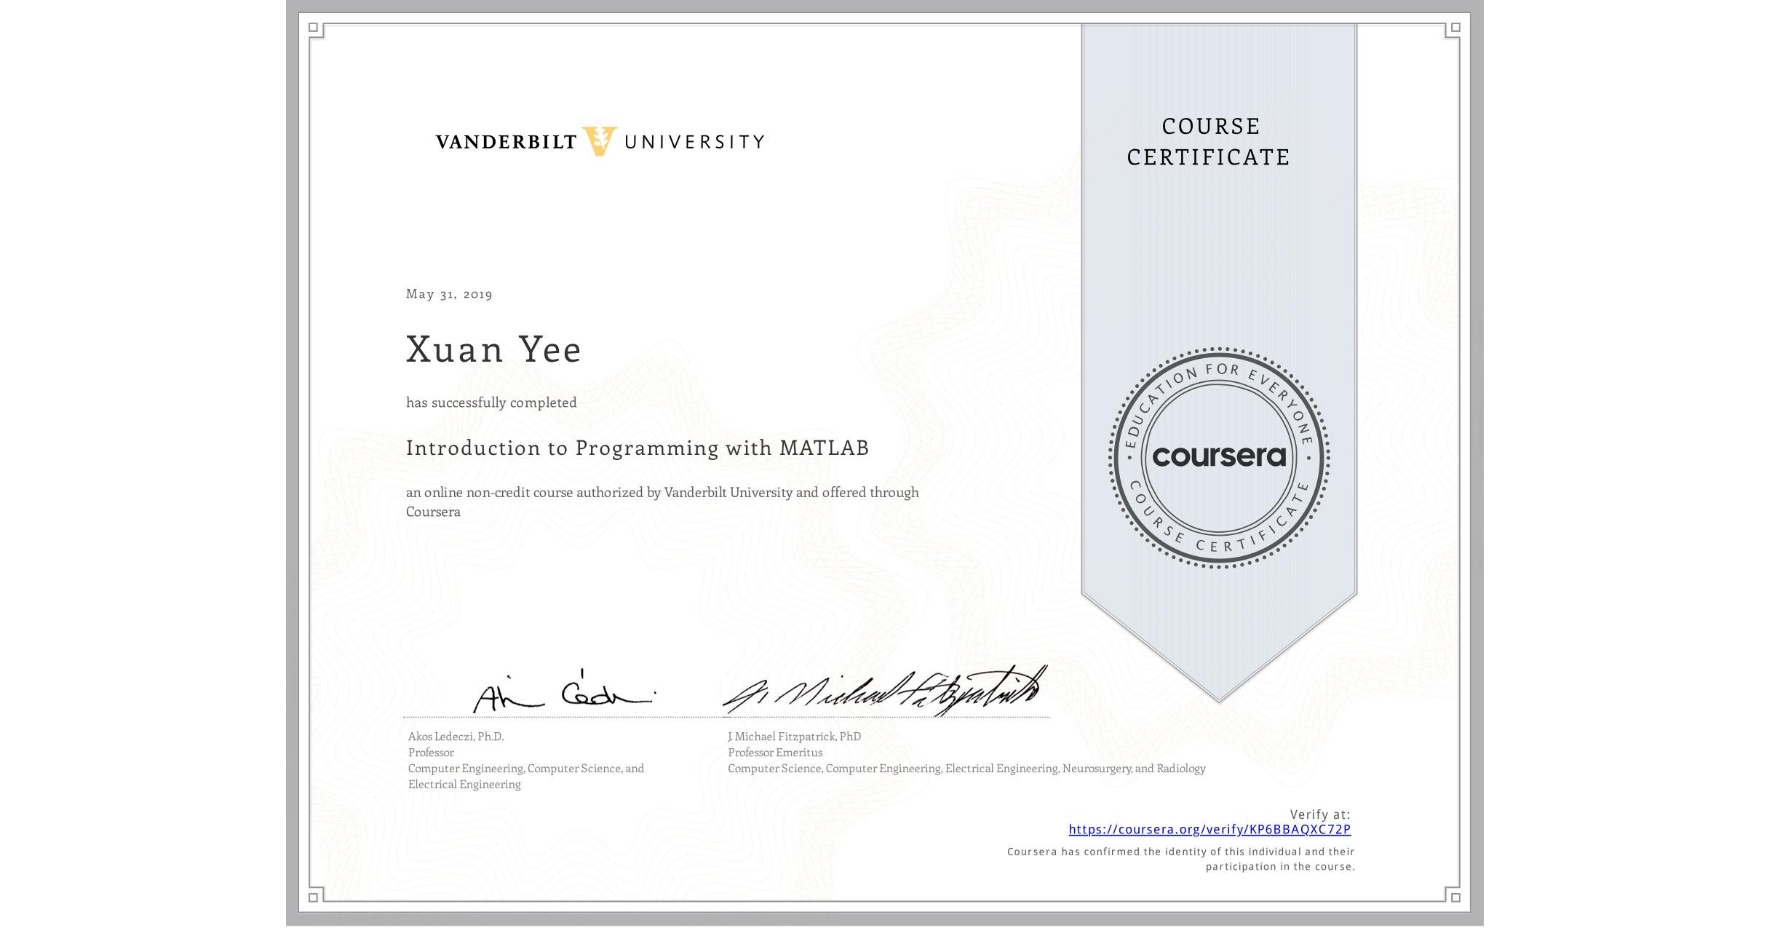 View certificate for Xuan Yee, Introduction to Programming with MATLAB, an online non-credit course authorized by Vanderbilt University and offered through Coursera